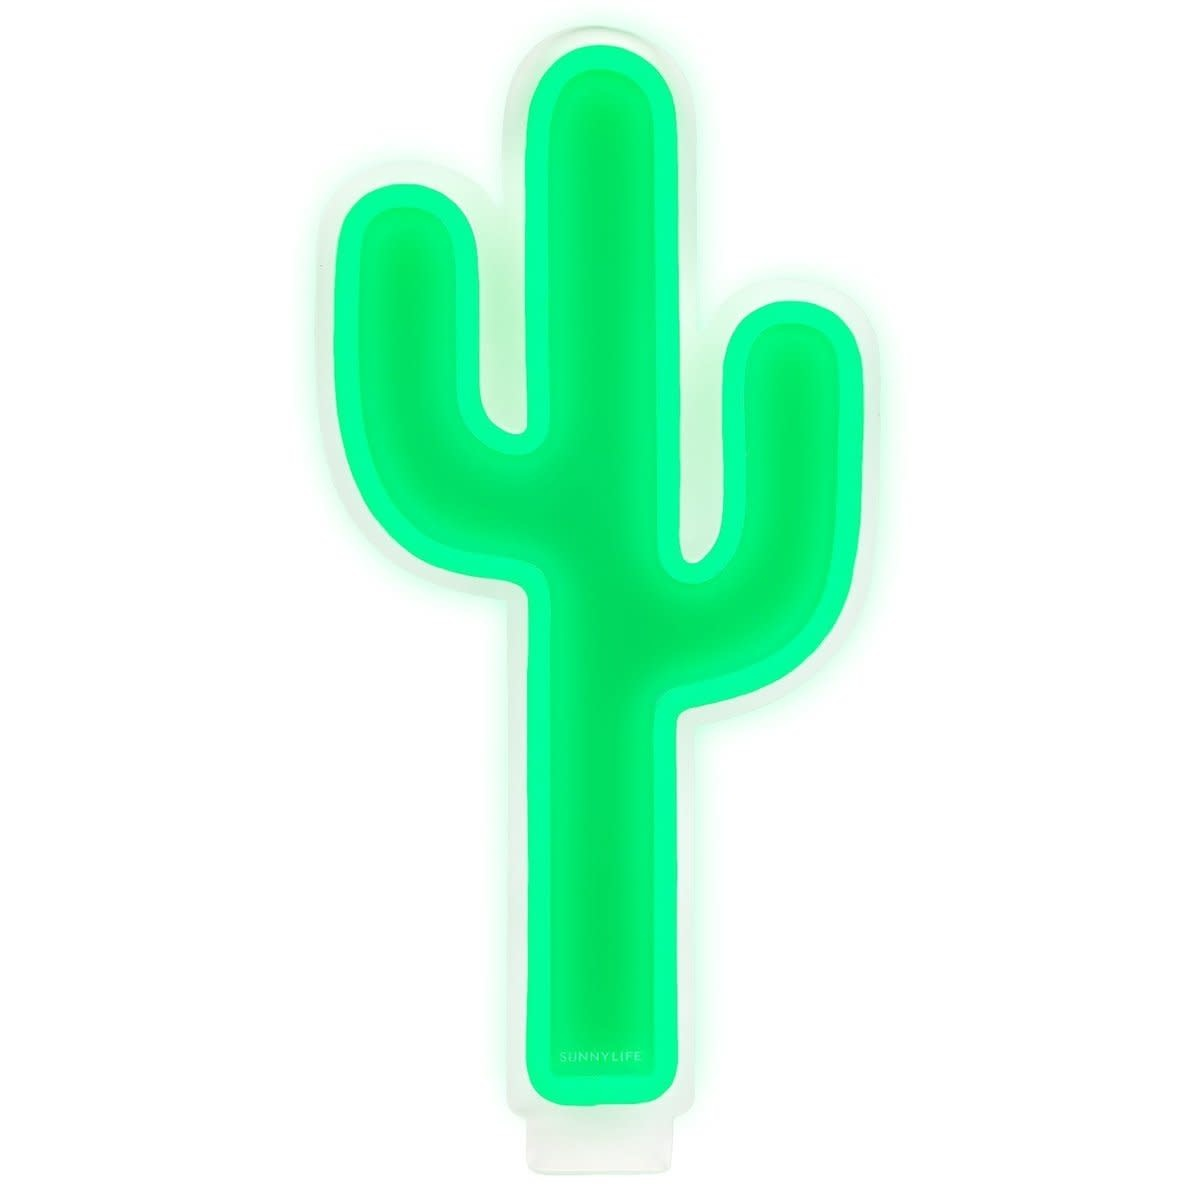 Cactus Neon LED Desk/Wall Light